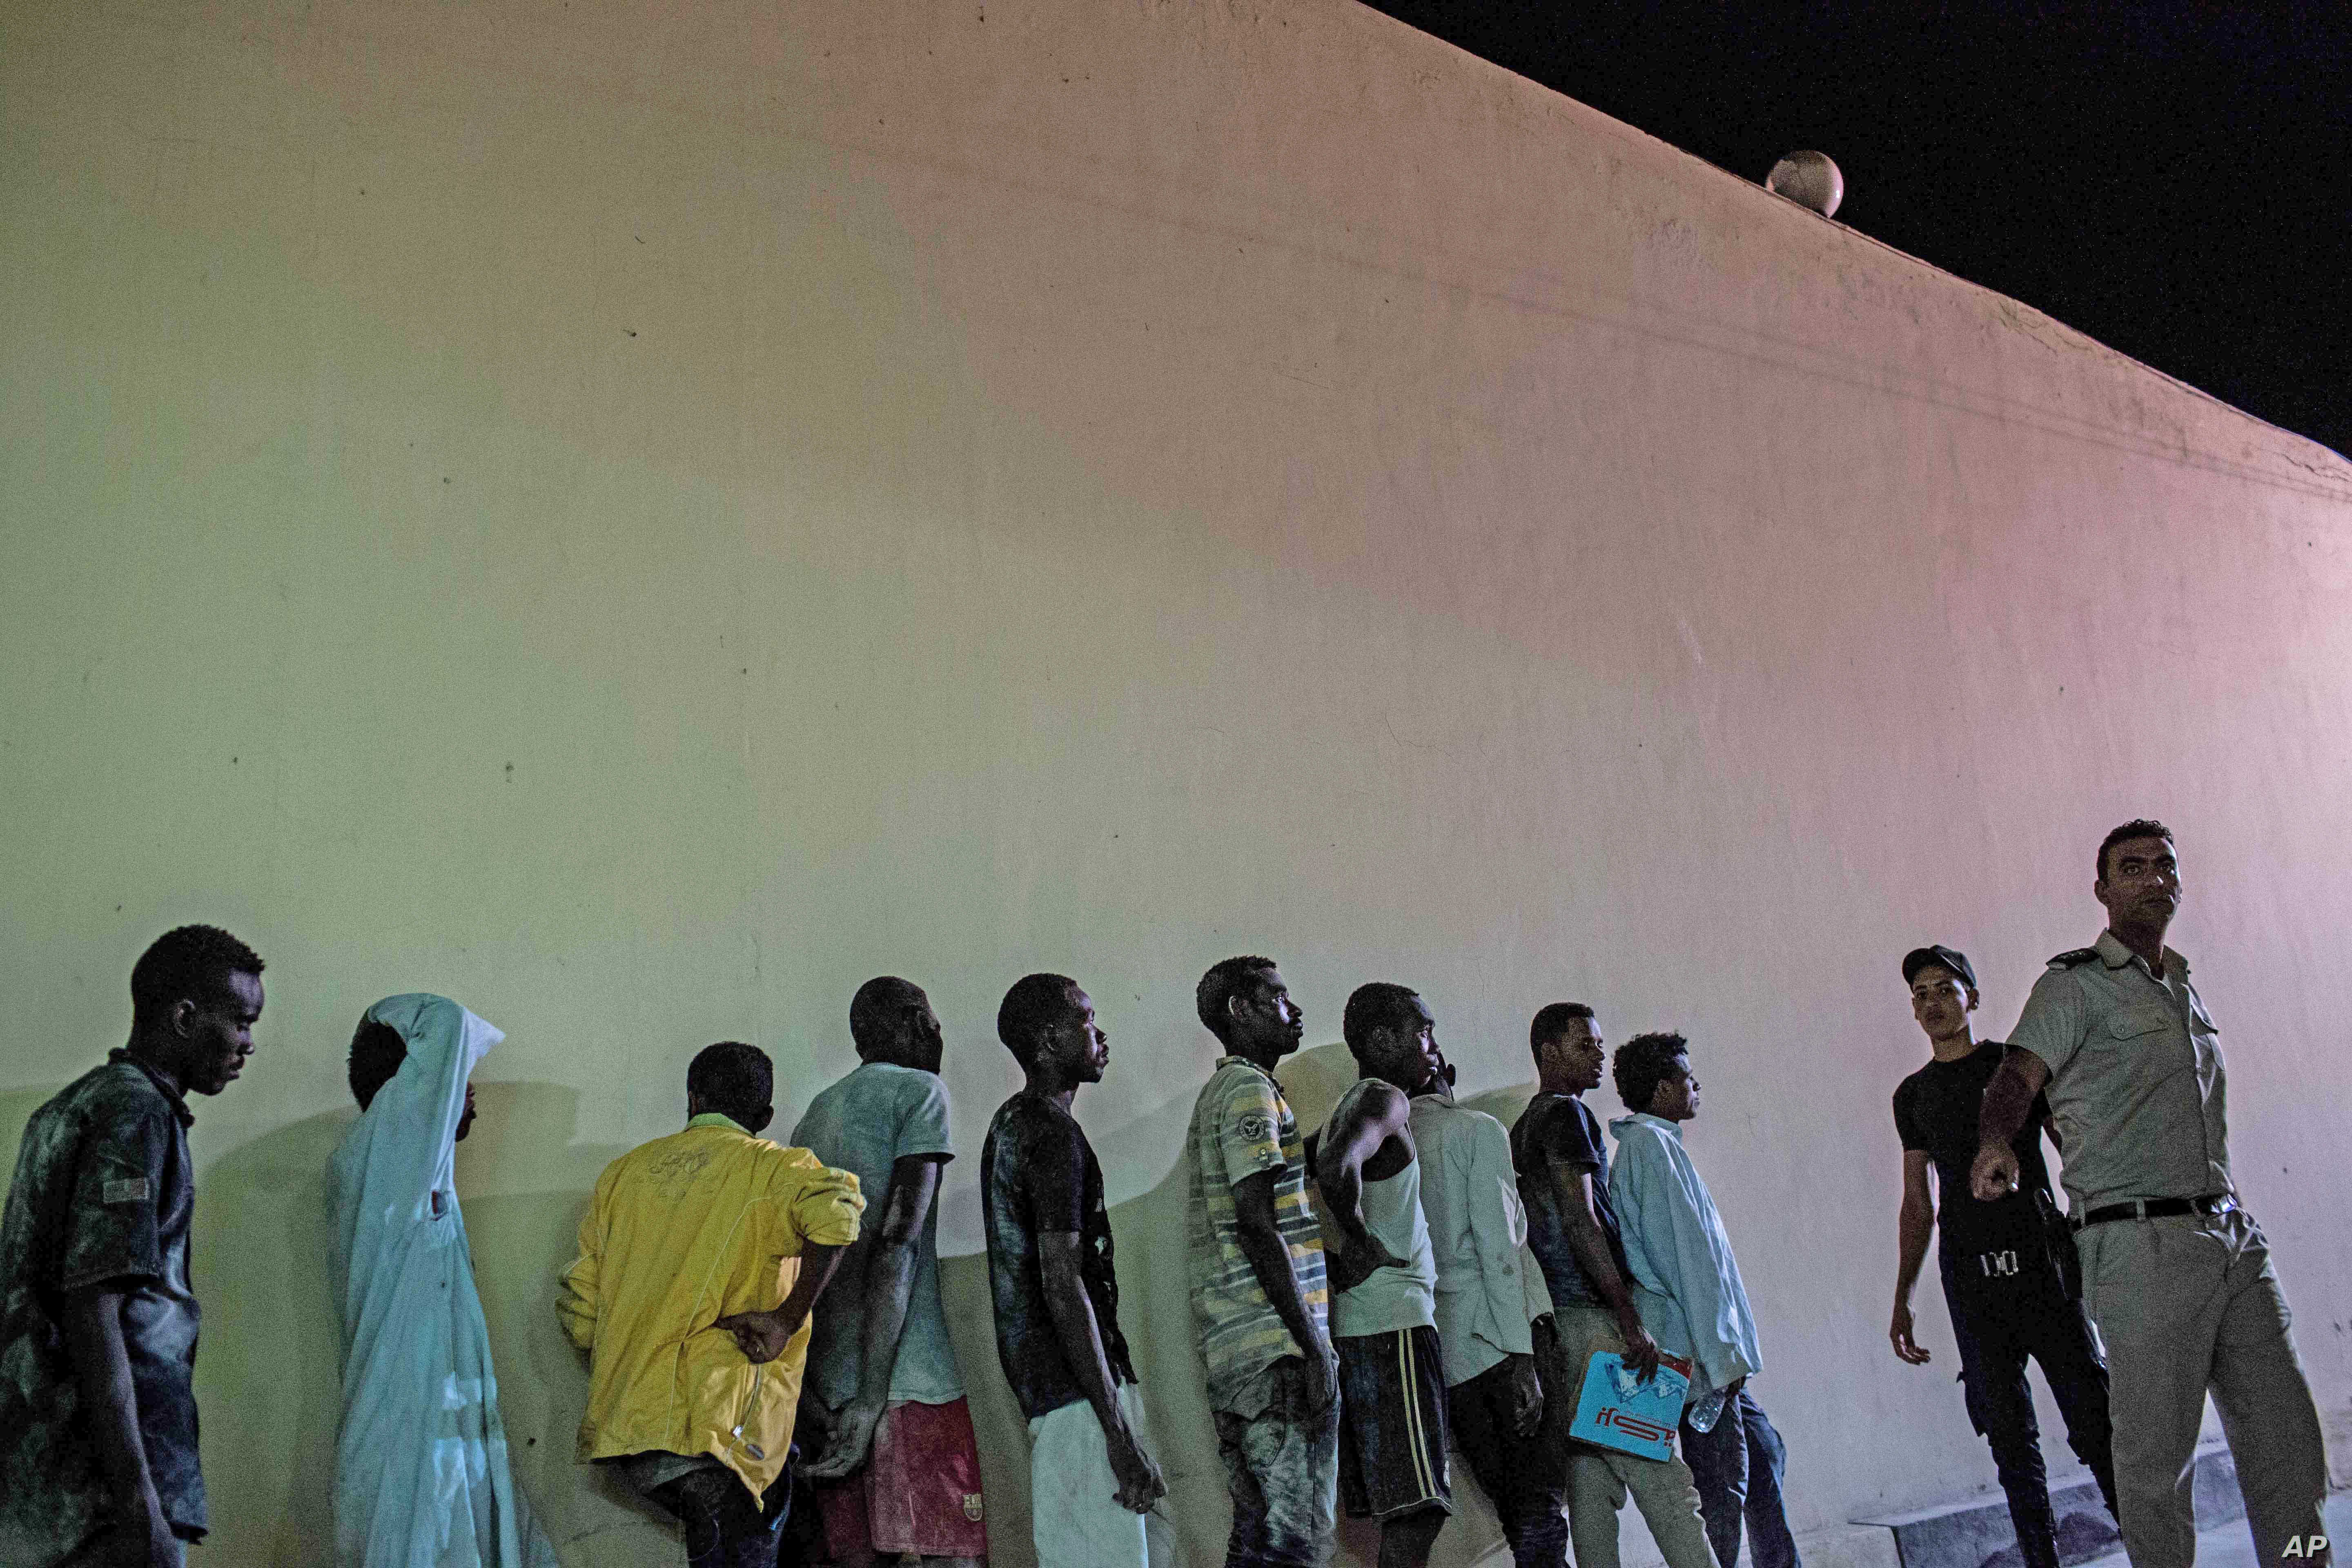 Security officers line up Sudanese people detained at a police station in Rosetta, Egypt, after rescued from a boat capsized off the Mediterranean coast near the Egyptian city of Alexandria, Sept. 21, 2016.